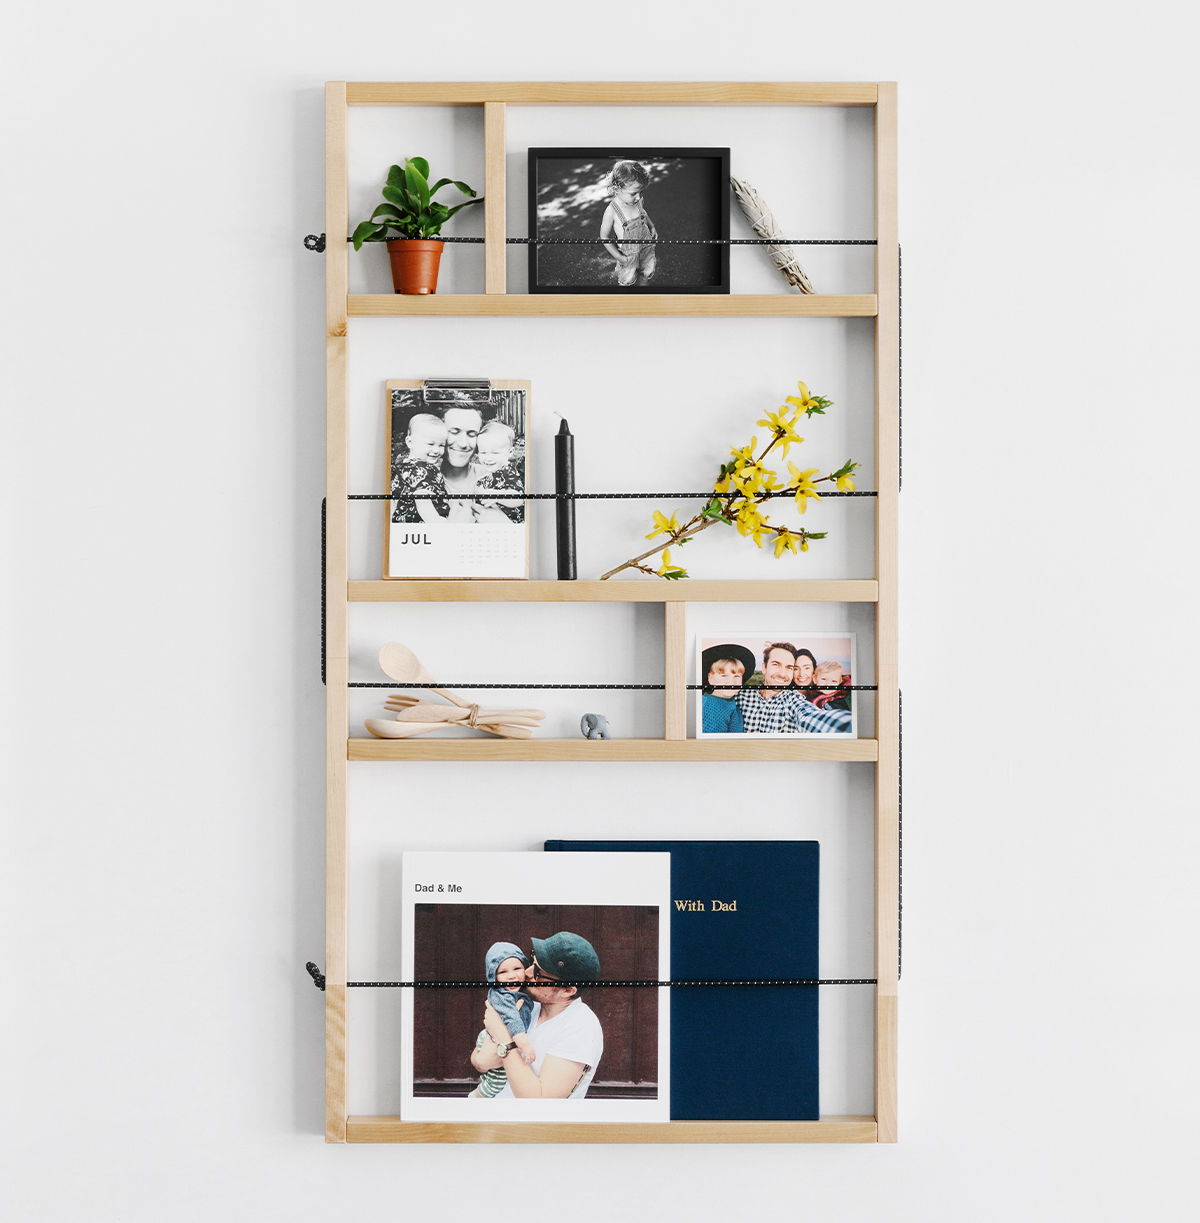 Wall-mounted shelf filled with photo-prints and other decor